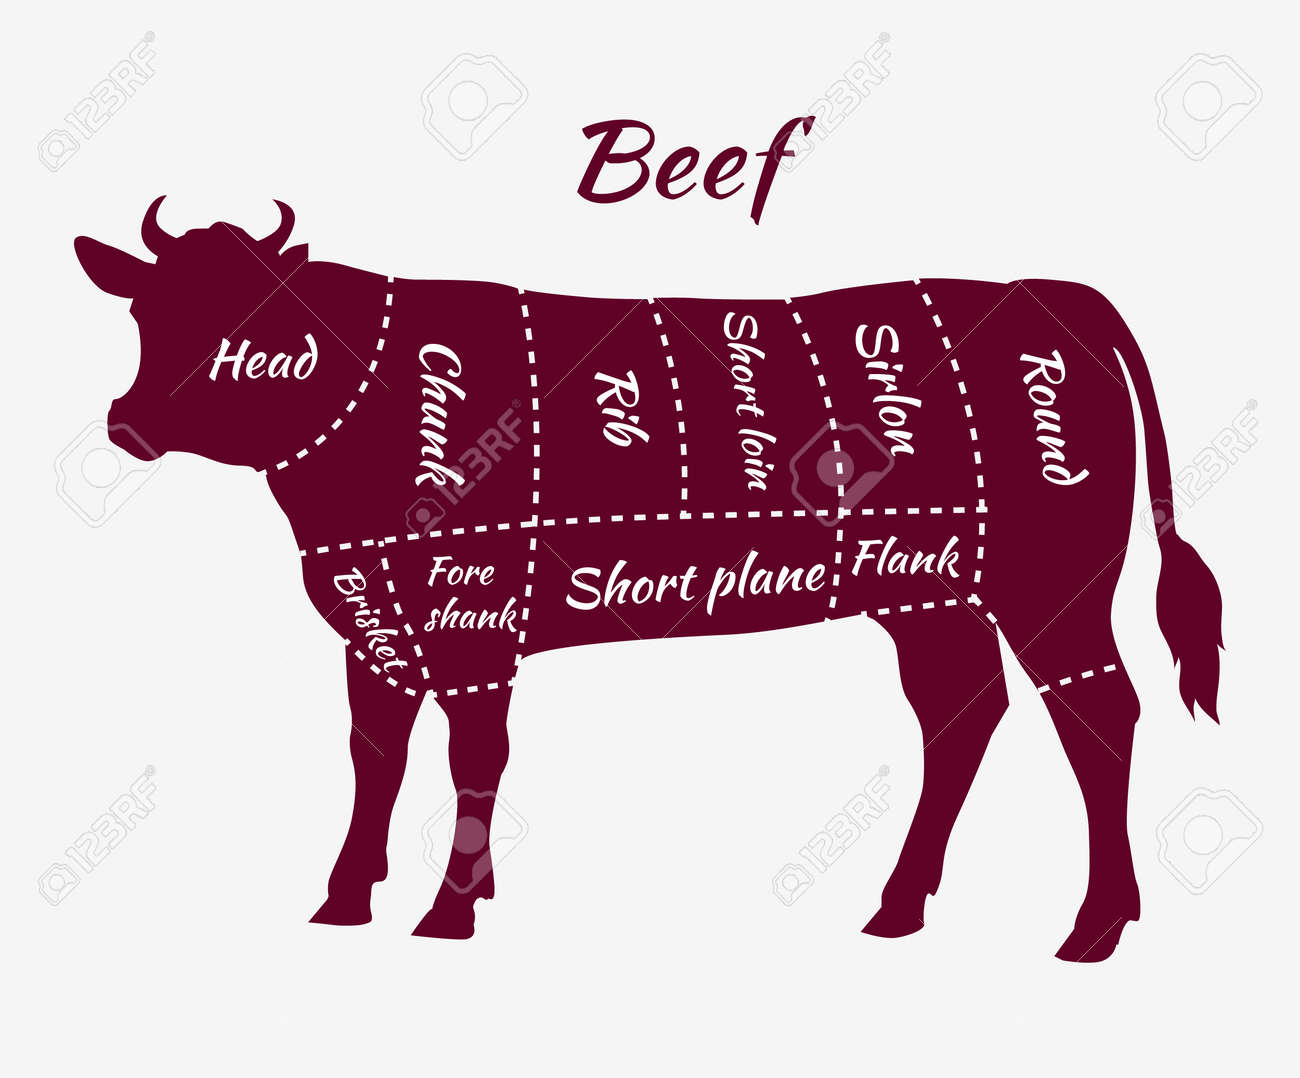 American cuts of beef scheme of beef cuts for steak and roast american cuts of beef scheme of beef cuts for steak and roast butcher cuts pooptronica